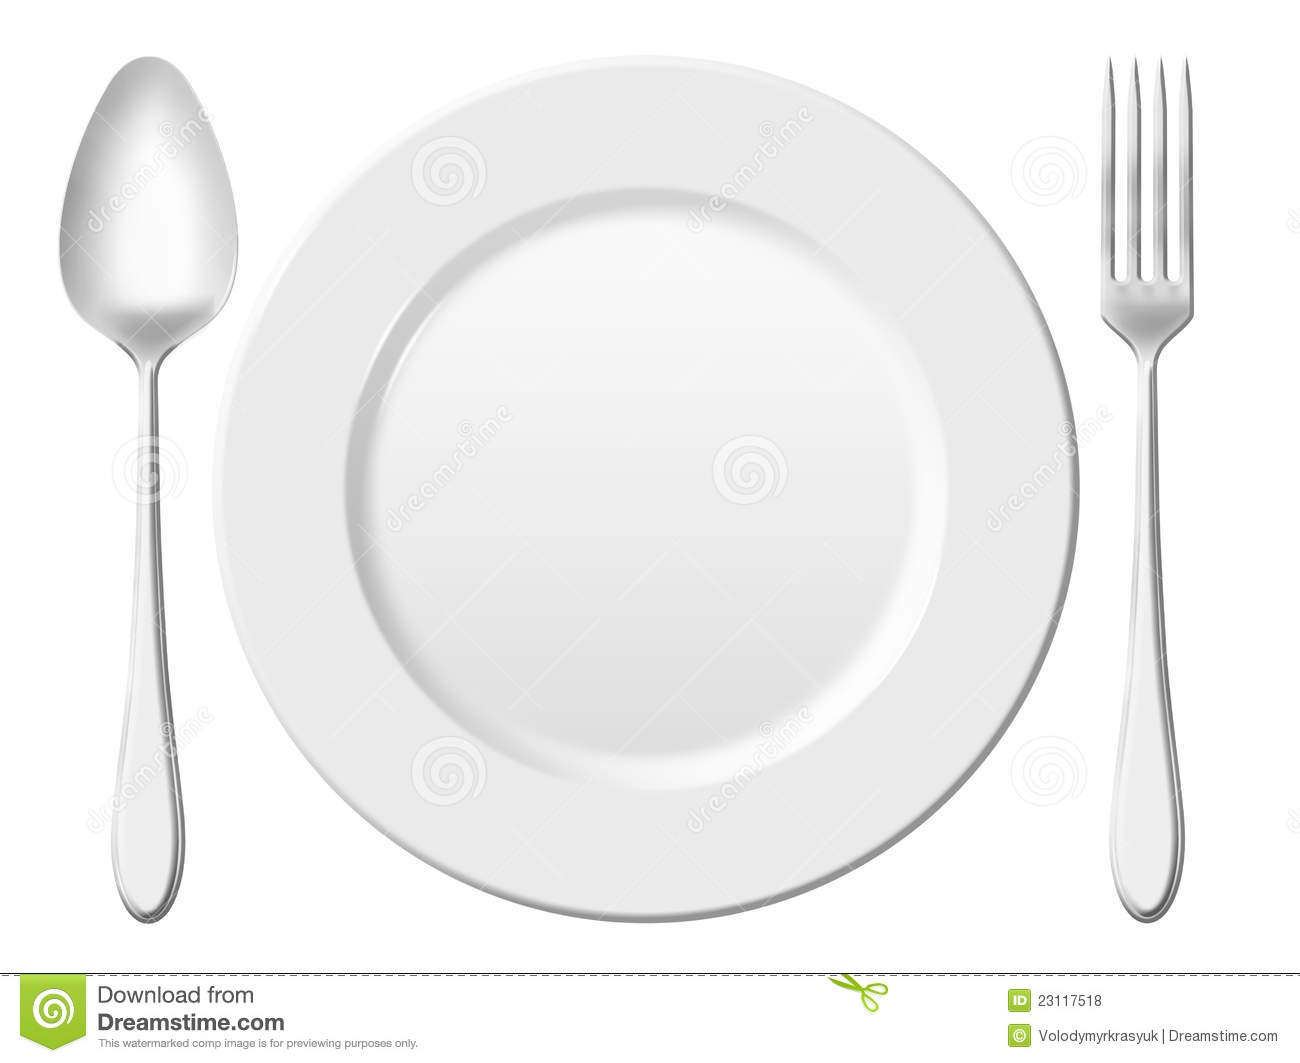 Dinner Setting set of place setting formal dinner stock vector - image: 40959595